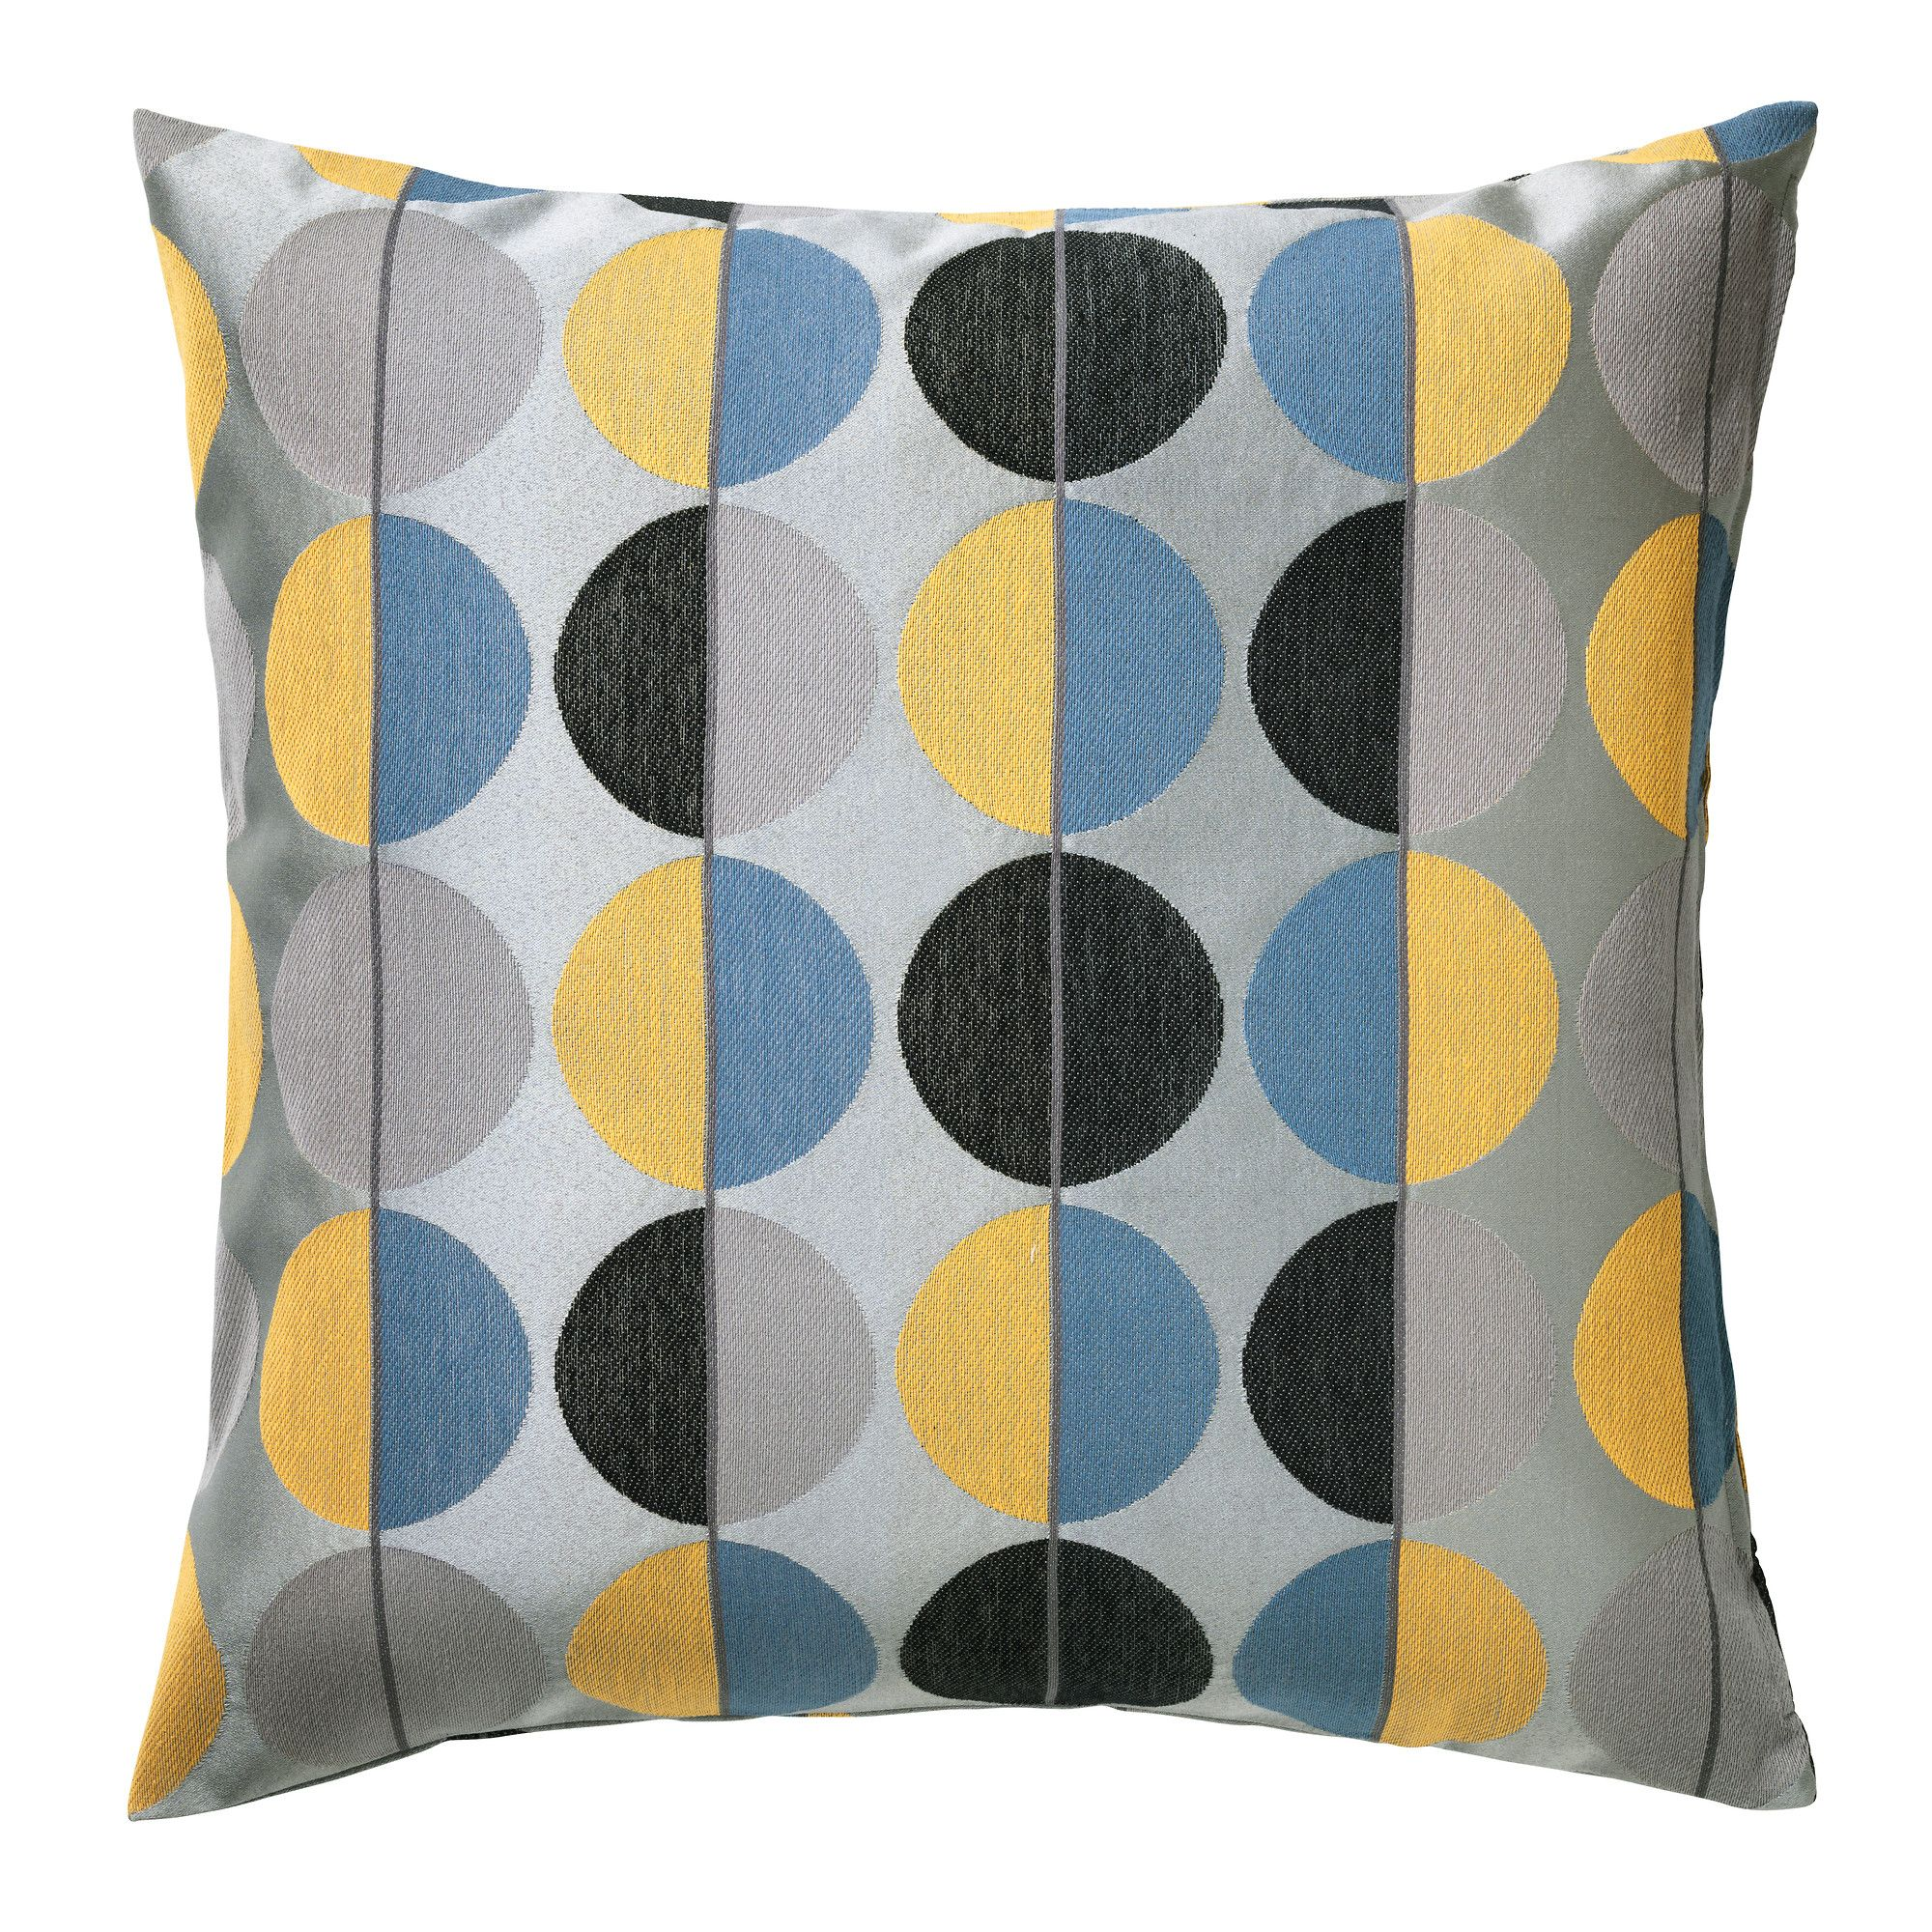 This IKEA OTTIL cushion cover es in two different color